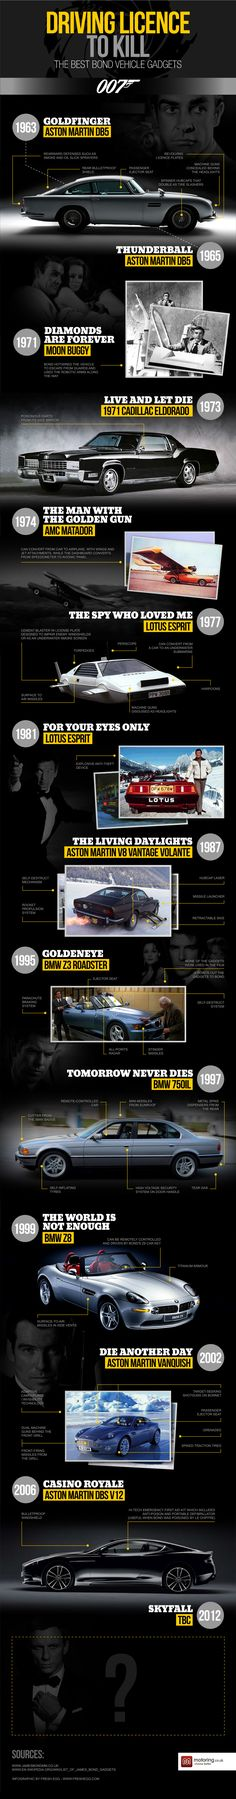 Driving Licence To Kill: The Best Bond Vehicle Gadgets